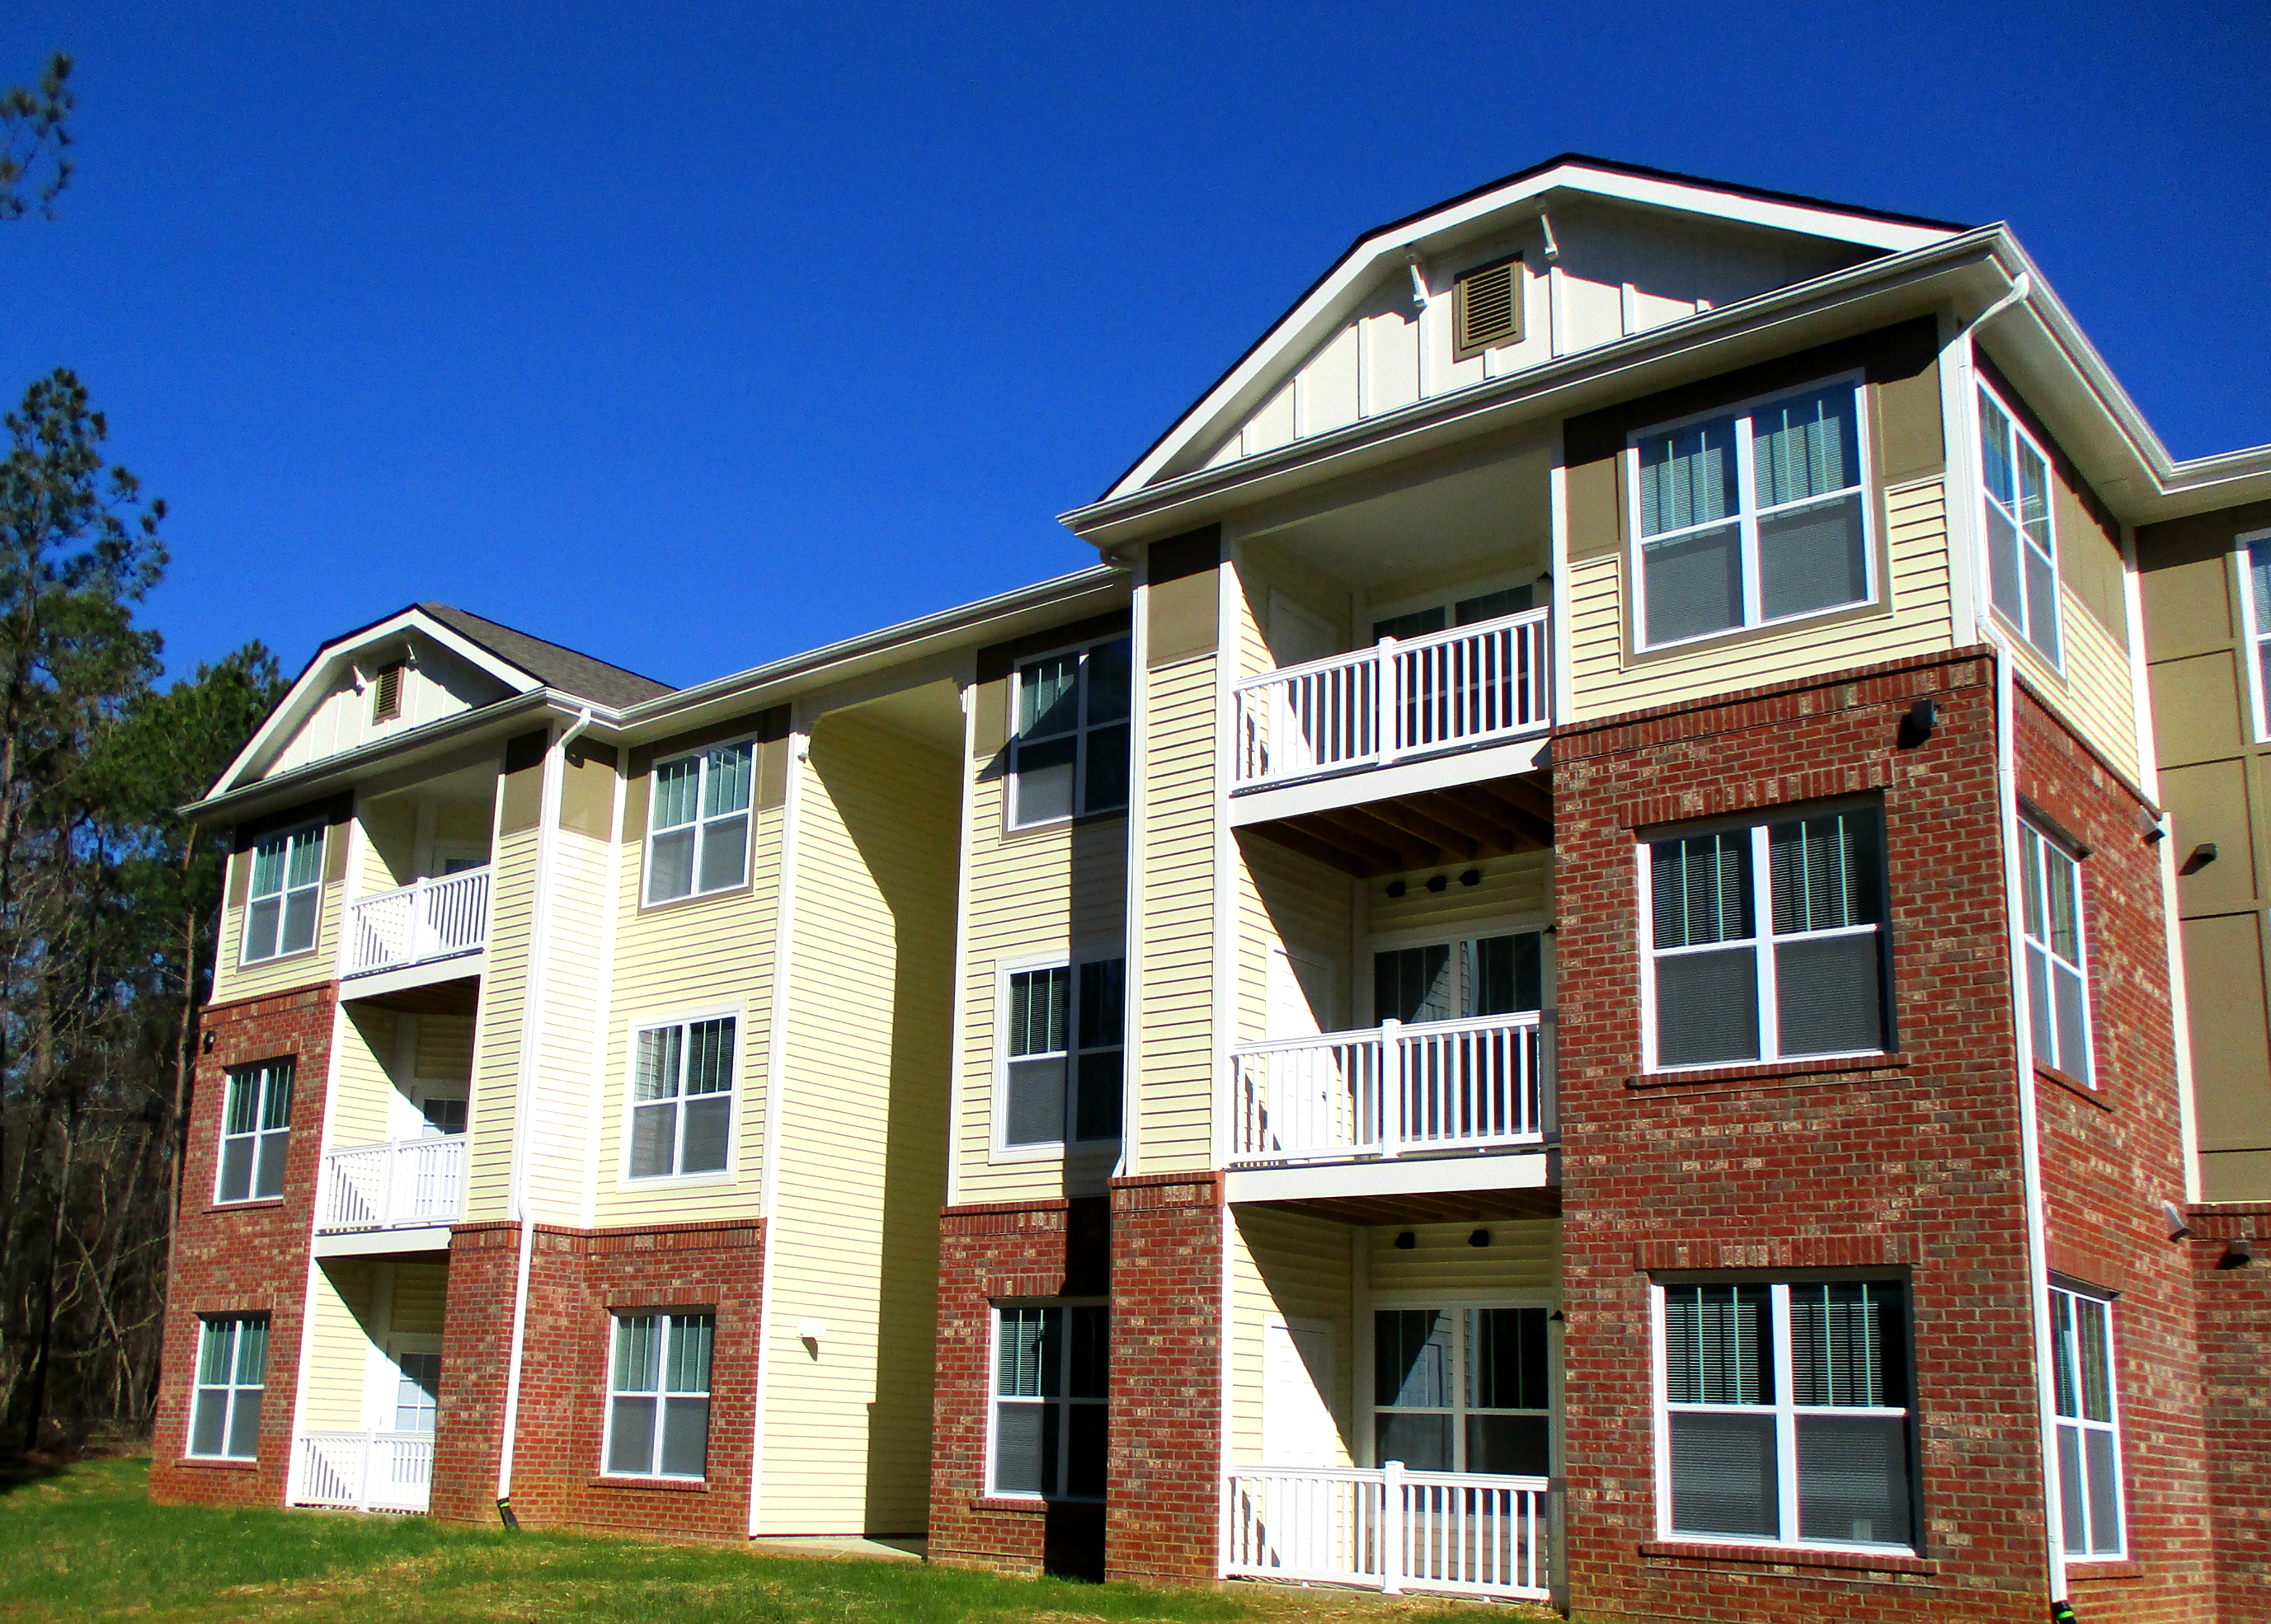 Image of Harpers Glen Apartments in Clinton, North Carolina